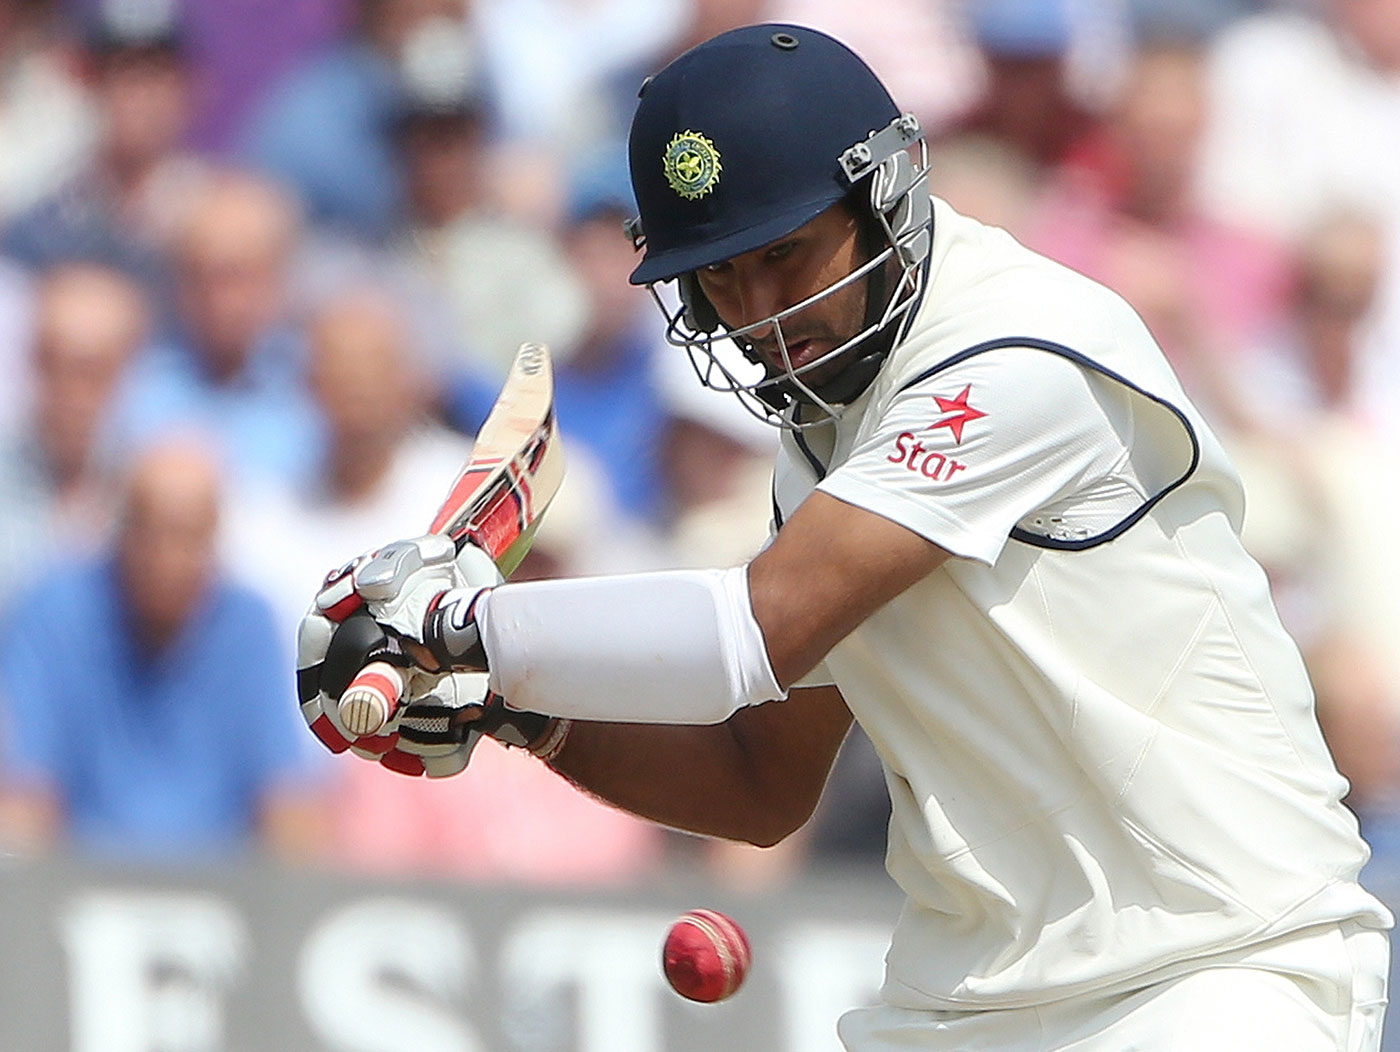 Cheteshwar Pujara watches the ball